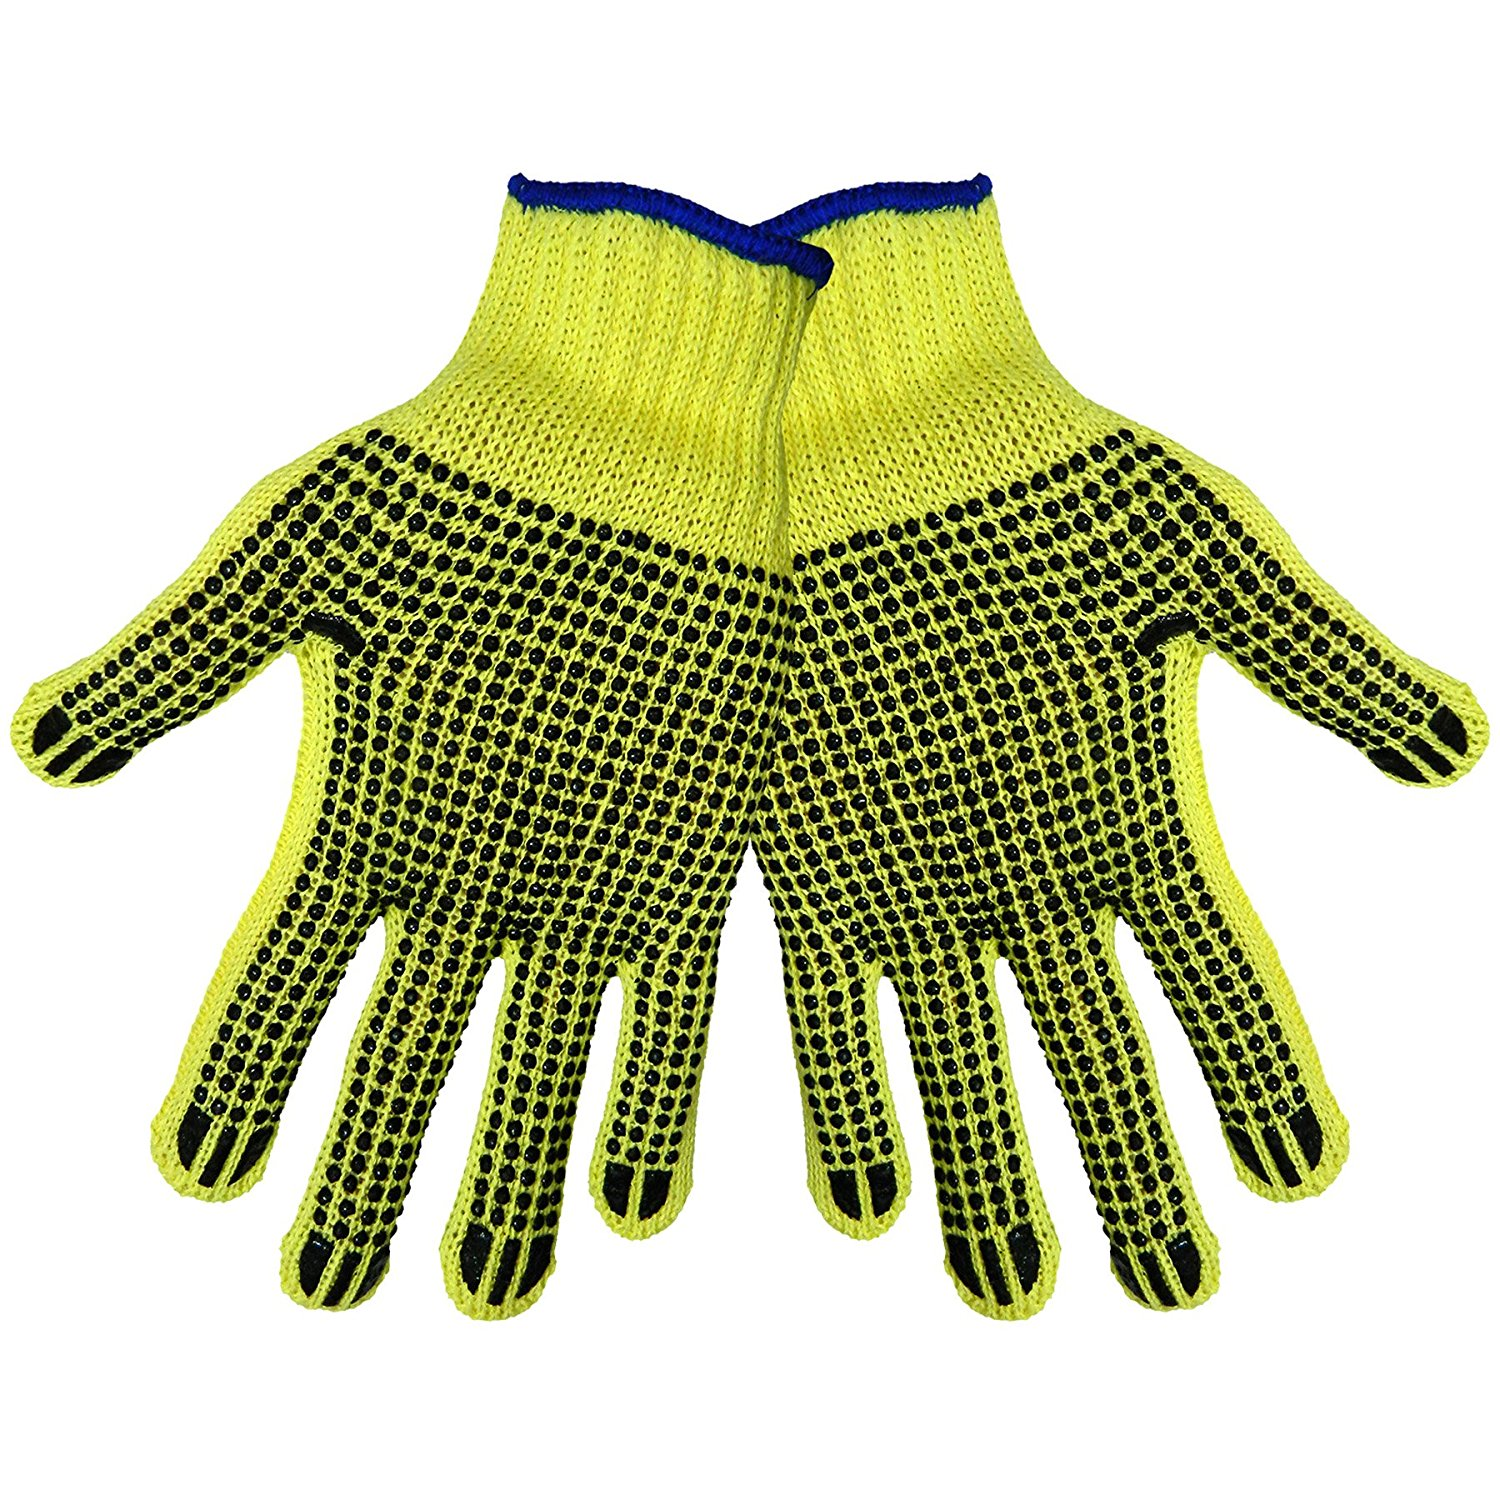 Global Glove K300D2 100 Percent Kevlar Standard Weight String Knits Glove, 2 Sided Dots, Cut Resistant, Ladies (Case of 120)